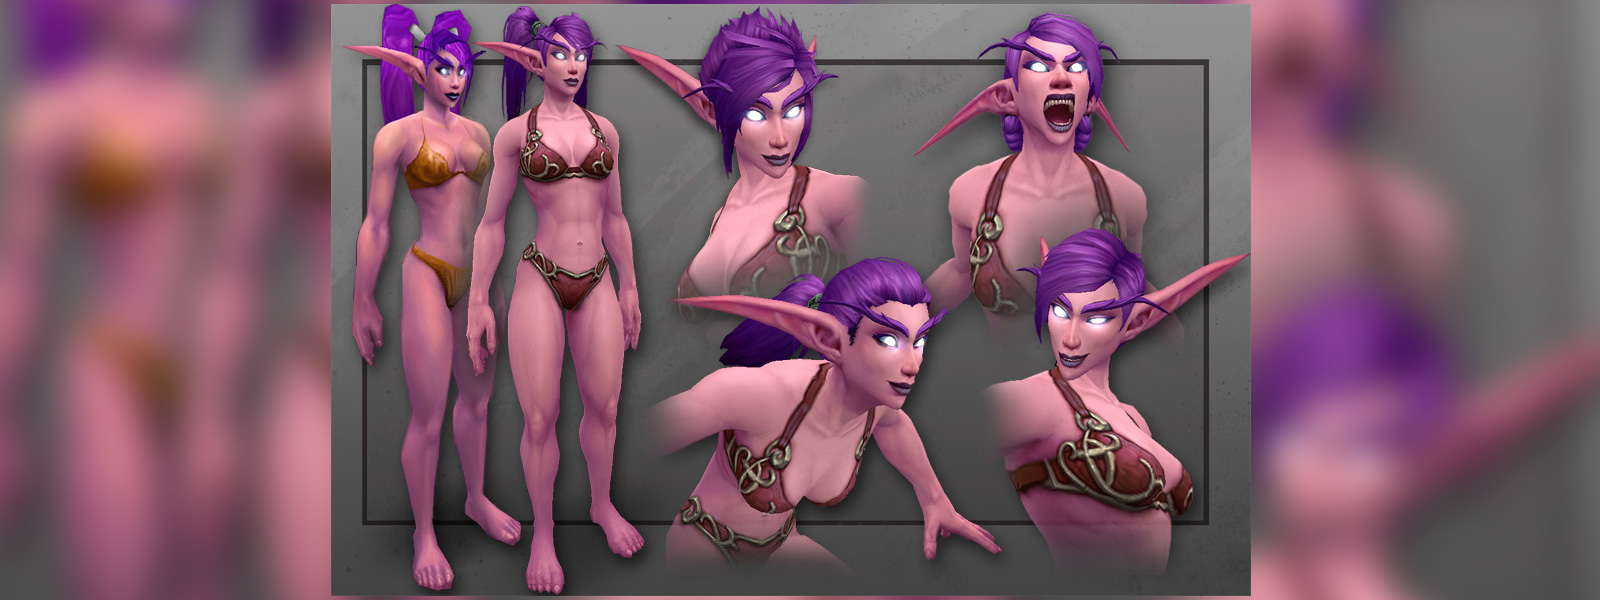 World of warcraft futanari mod pornos pic